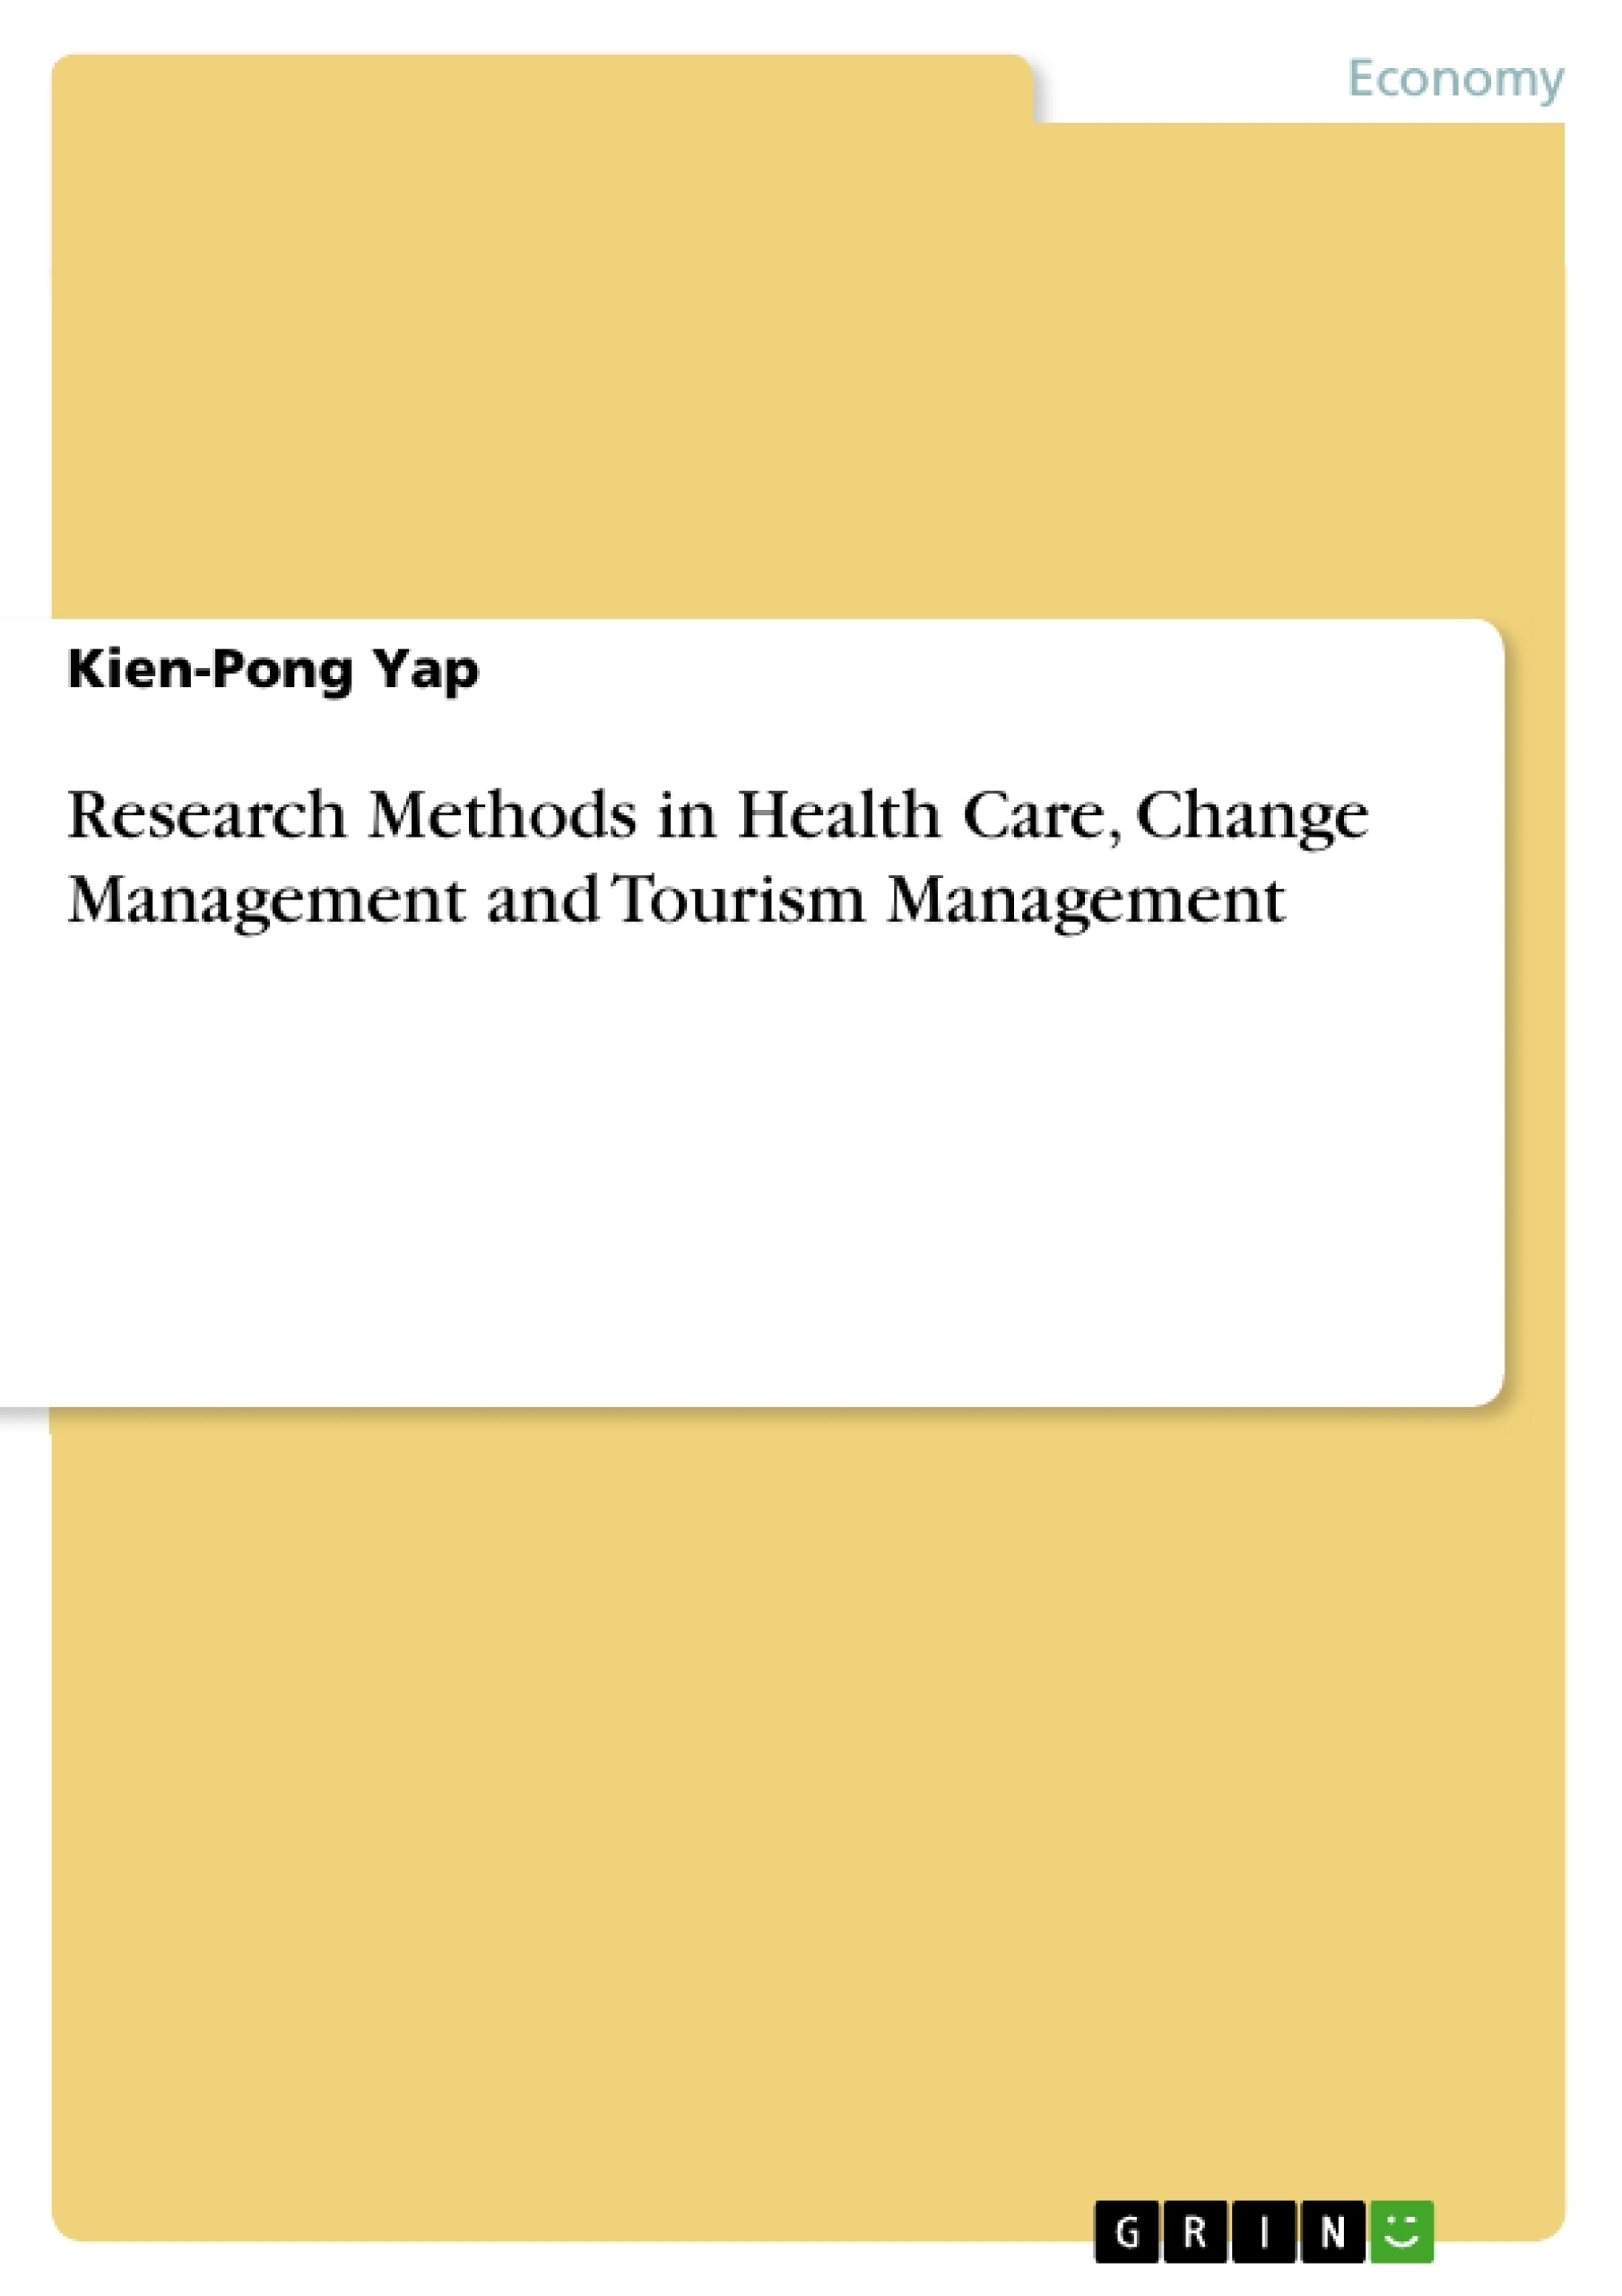 Title: Research Methods in Health Care, Change Management and Tourism Management